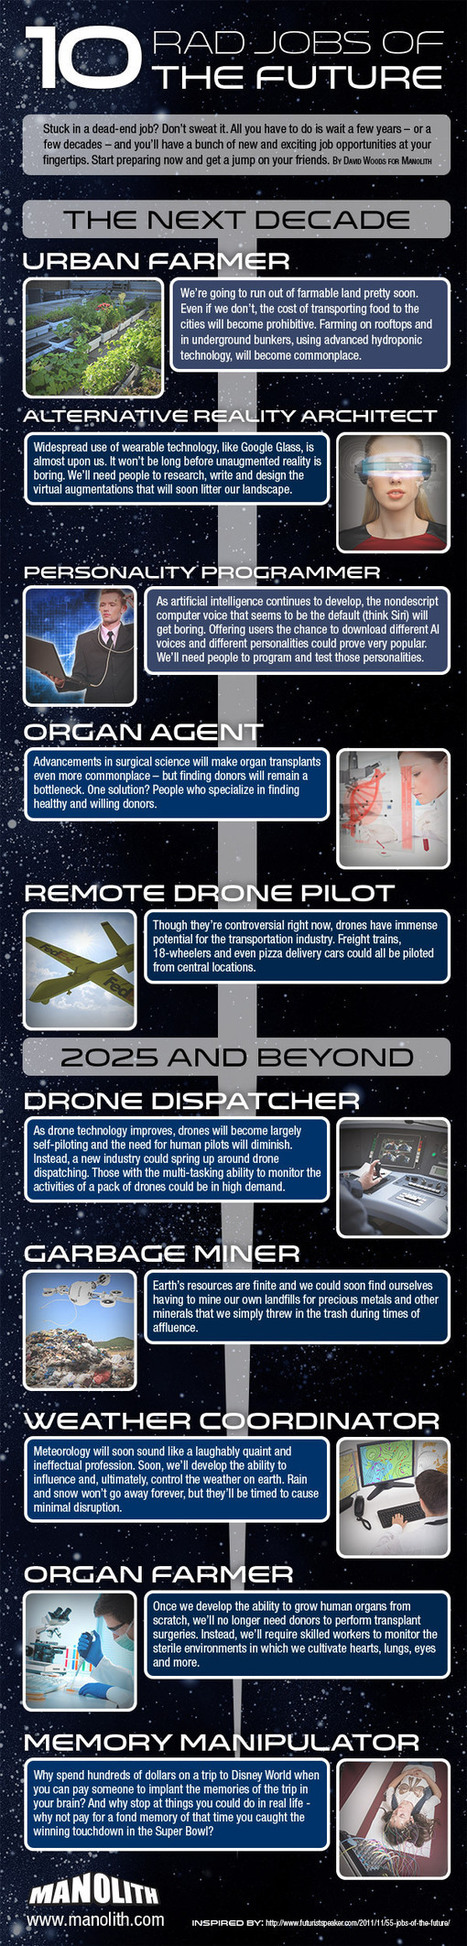 The Top 10 Rad Jobs of the Future [INFOGRAPHIC] | Career Advice | Scoop.it